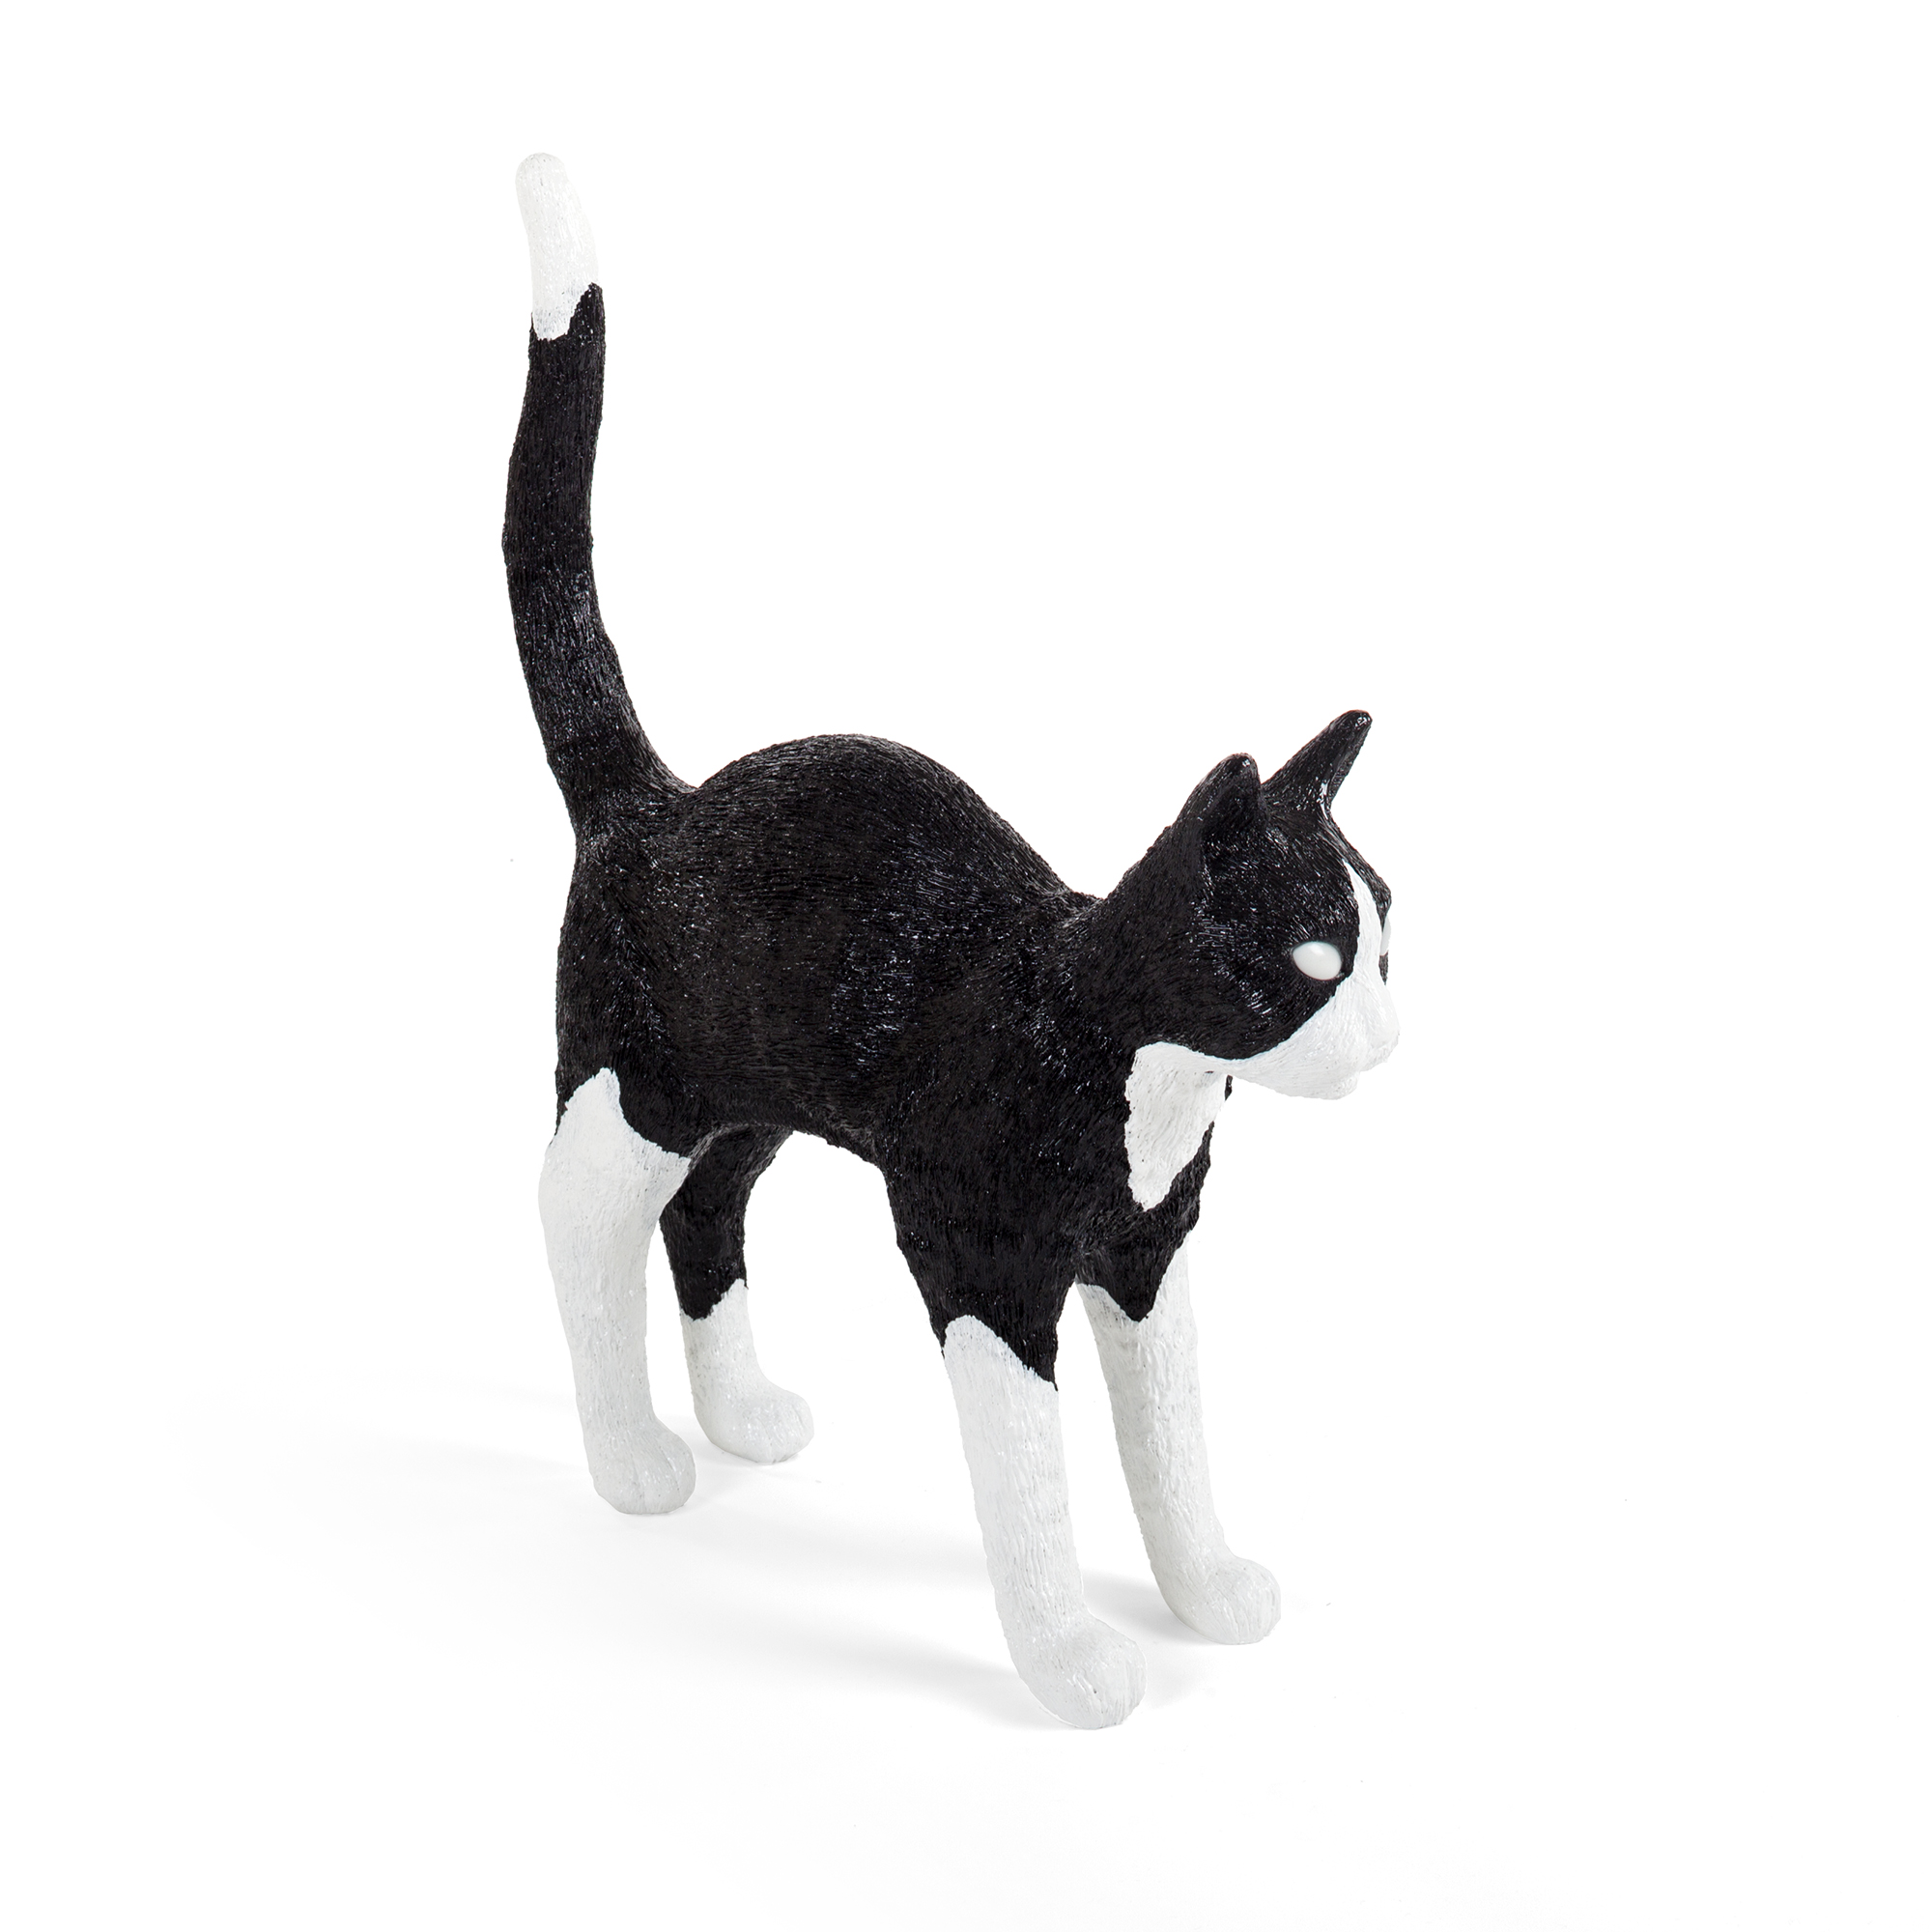 Seletti Lamp Jobby The Cat Black White Racurs